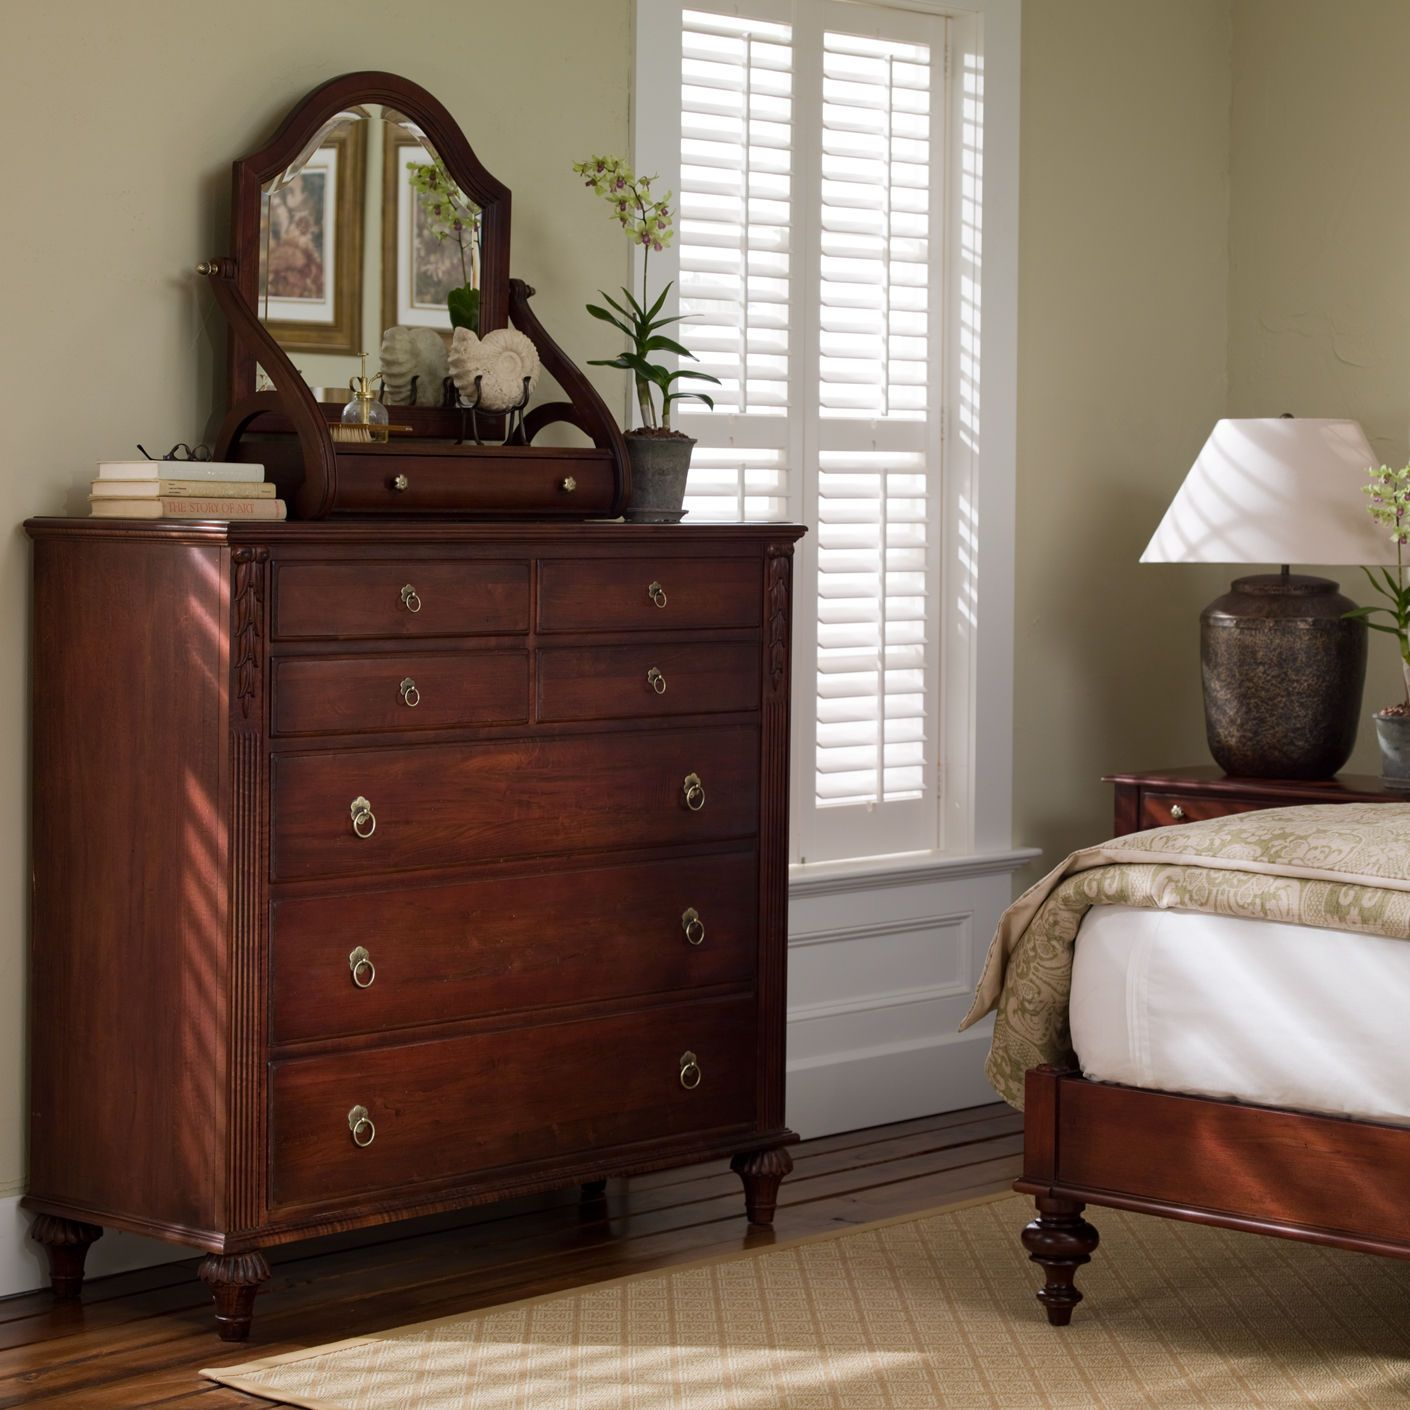 Dawson Tall Dresser Ethan Allen Us Home Ideas Pinterest Dresser Bedrooms And Master Bedroom